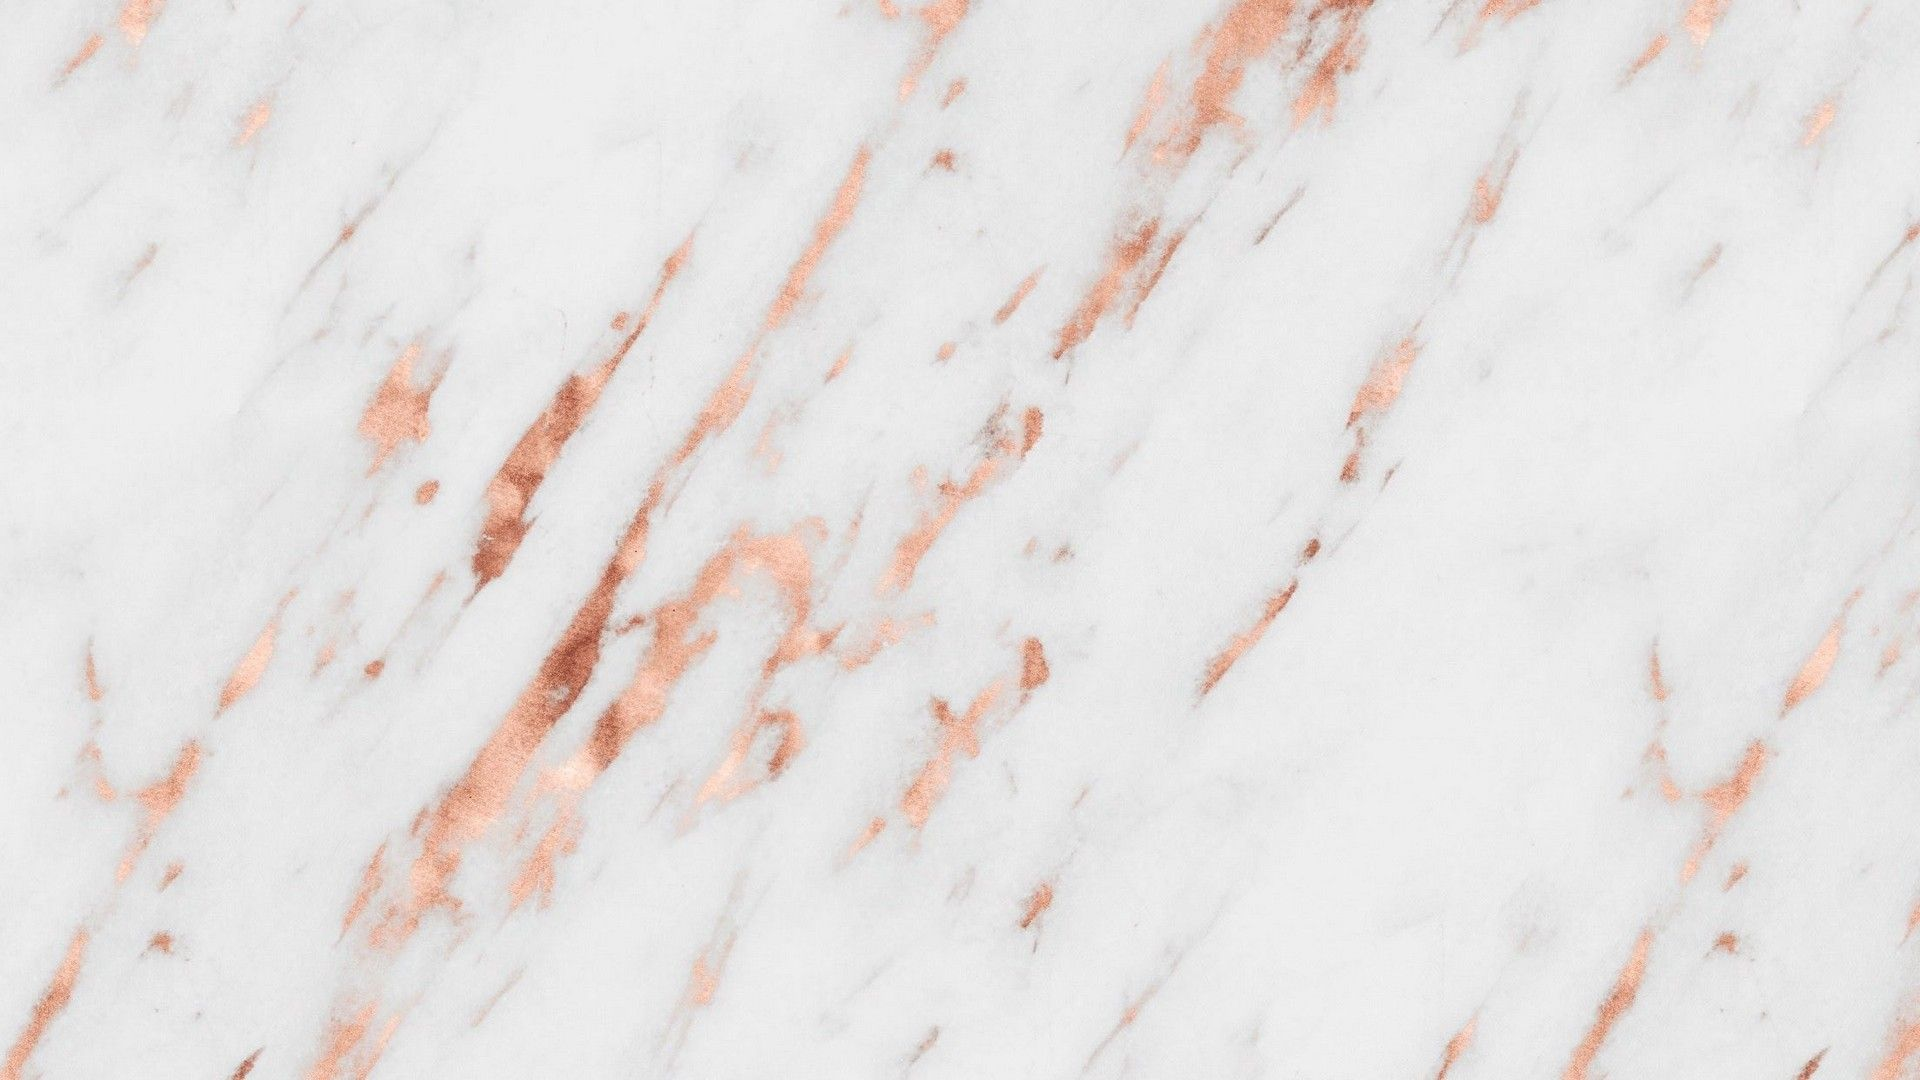 Rose Gold Marble Wallpapers Top Free Rose Gold Marble Backgrounds Wallpaperaccess